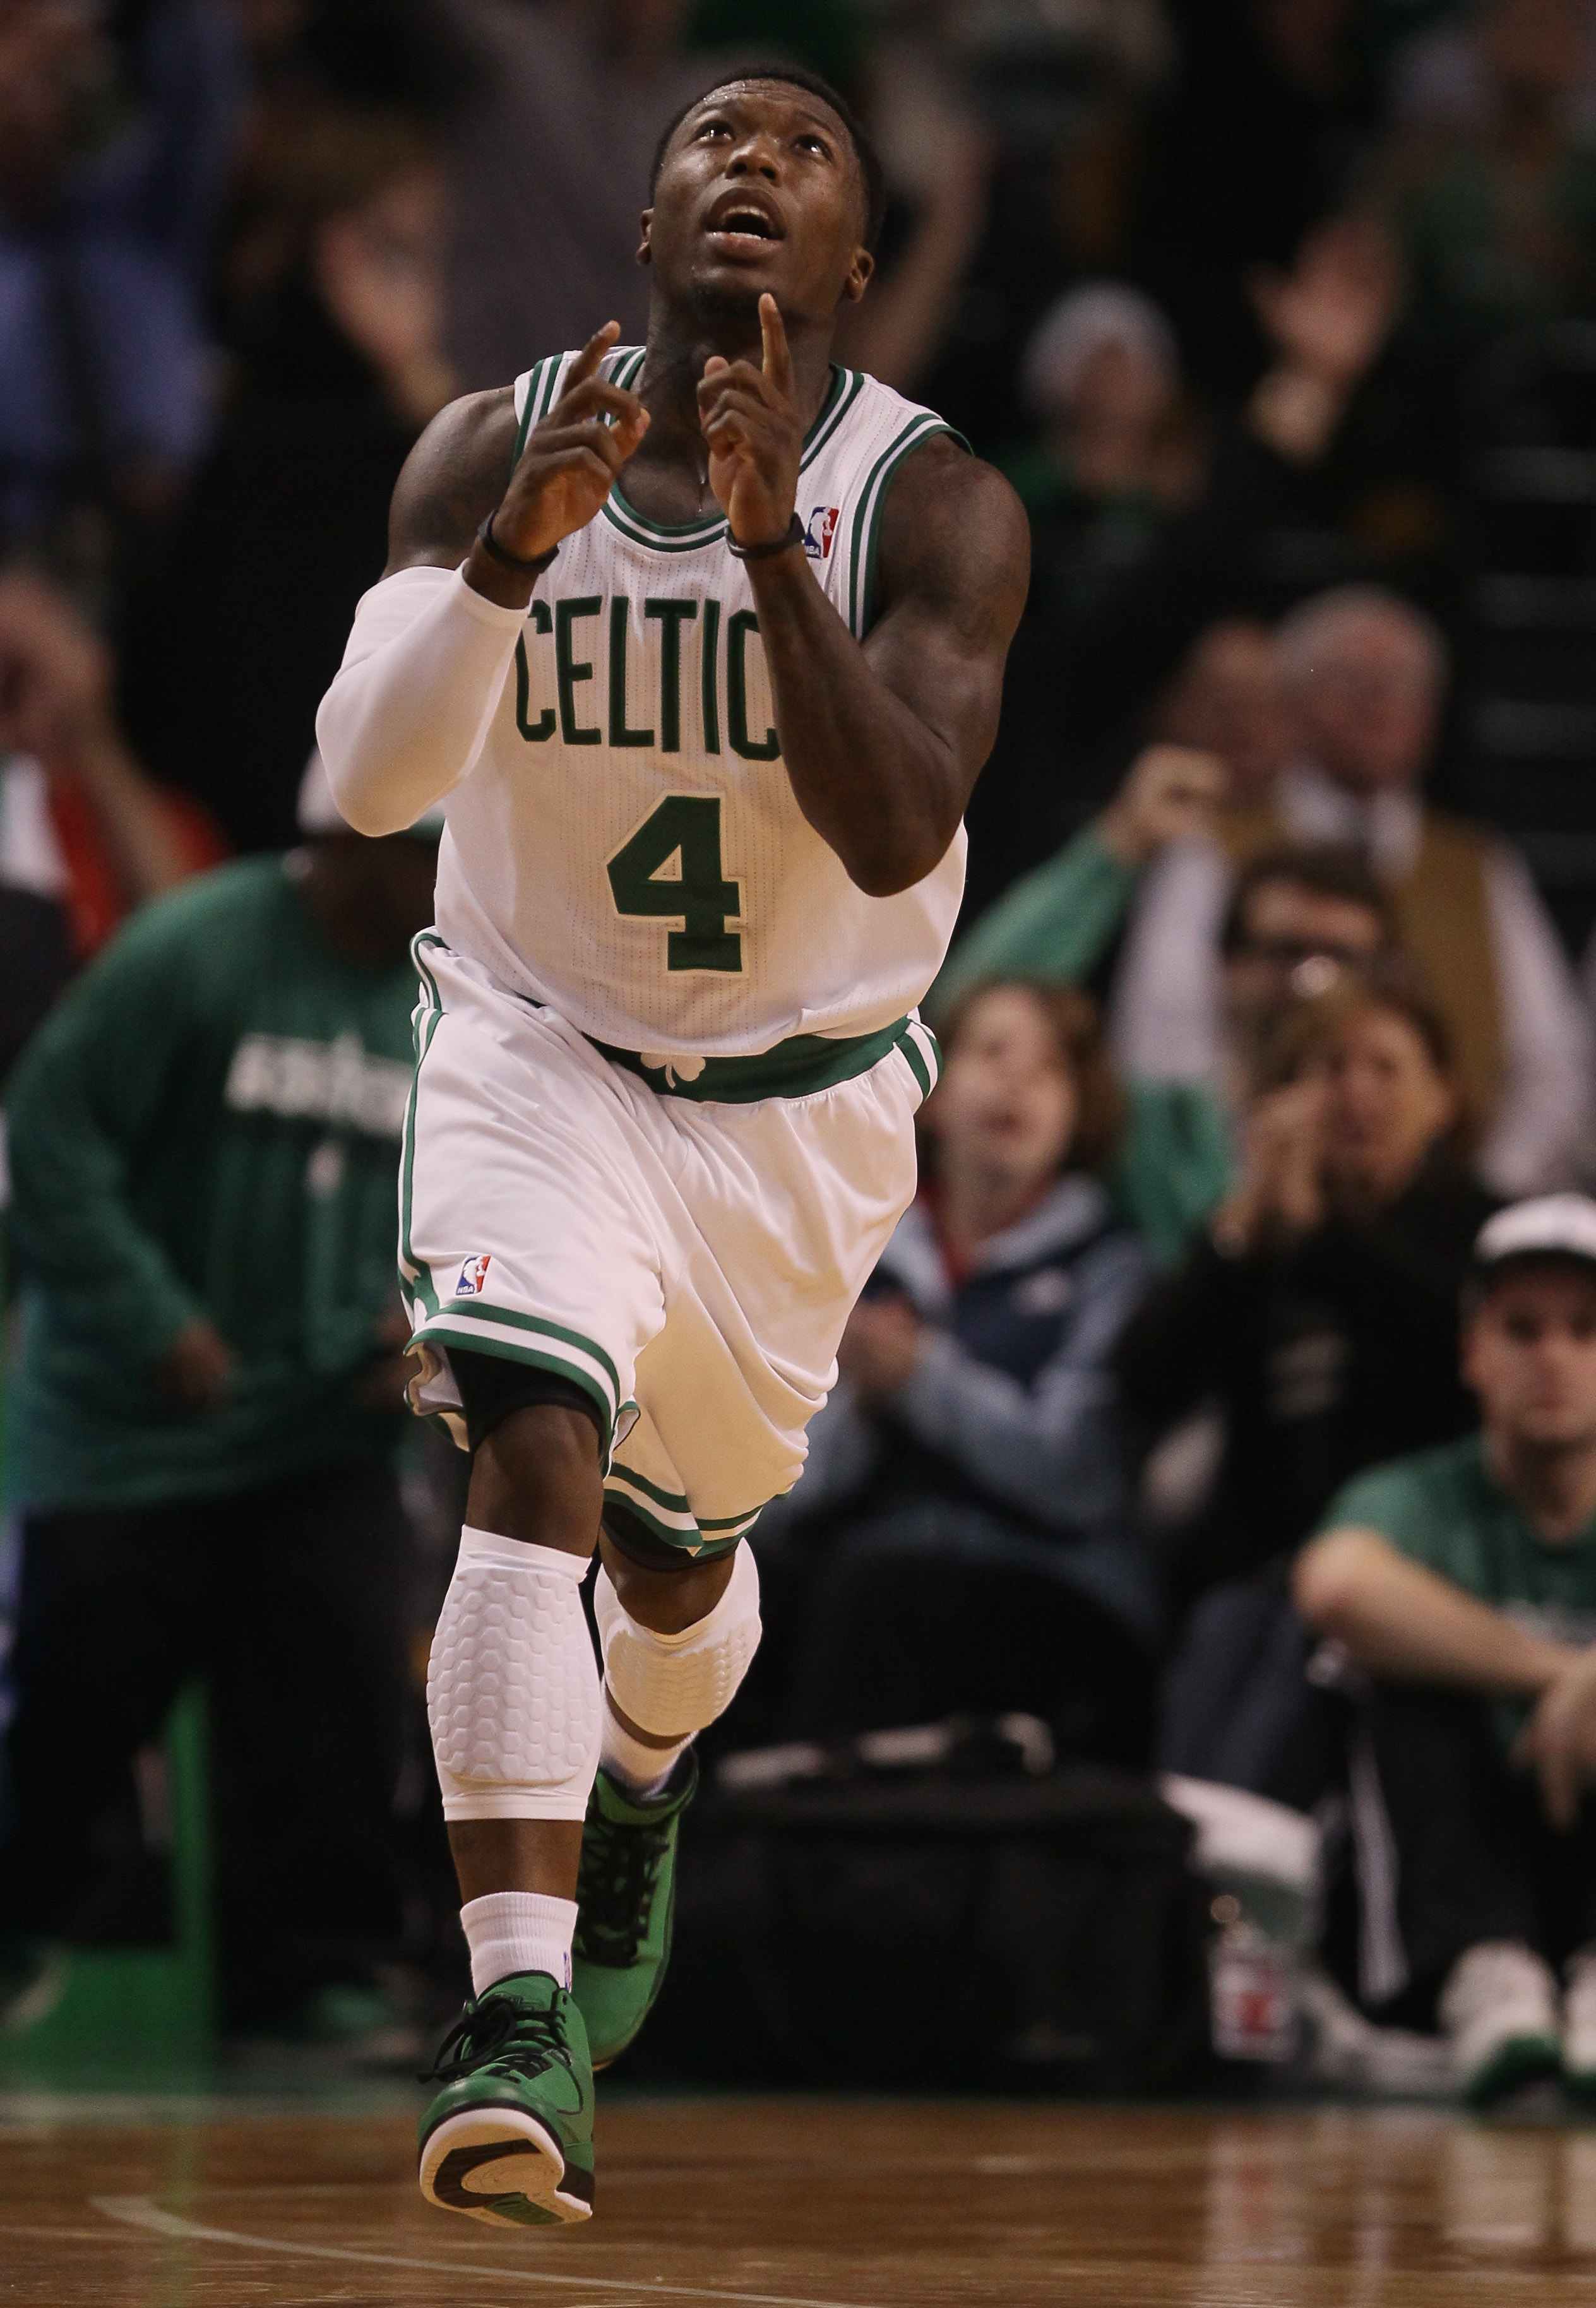 BOSTON - NOVEMBER 05:  Nate Robinson #4 of the Boston Celtics celebrates his three pointer in the second half against the Chicago Bulls on November 5, 2010 at the TD Garden in Boston, Massachusetts. The Celtics defeated the Bulls 110-105 in overtime. NOTE